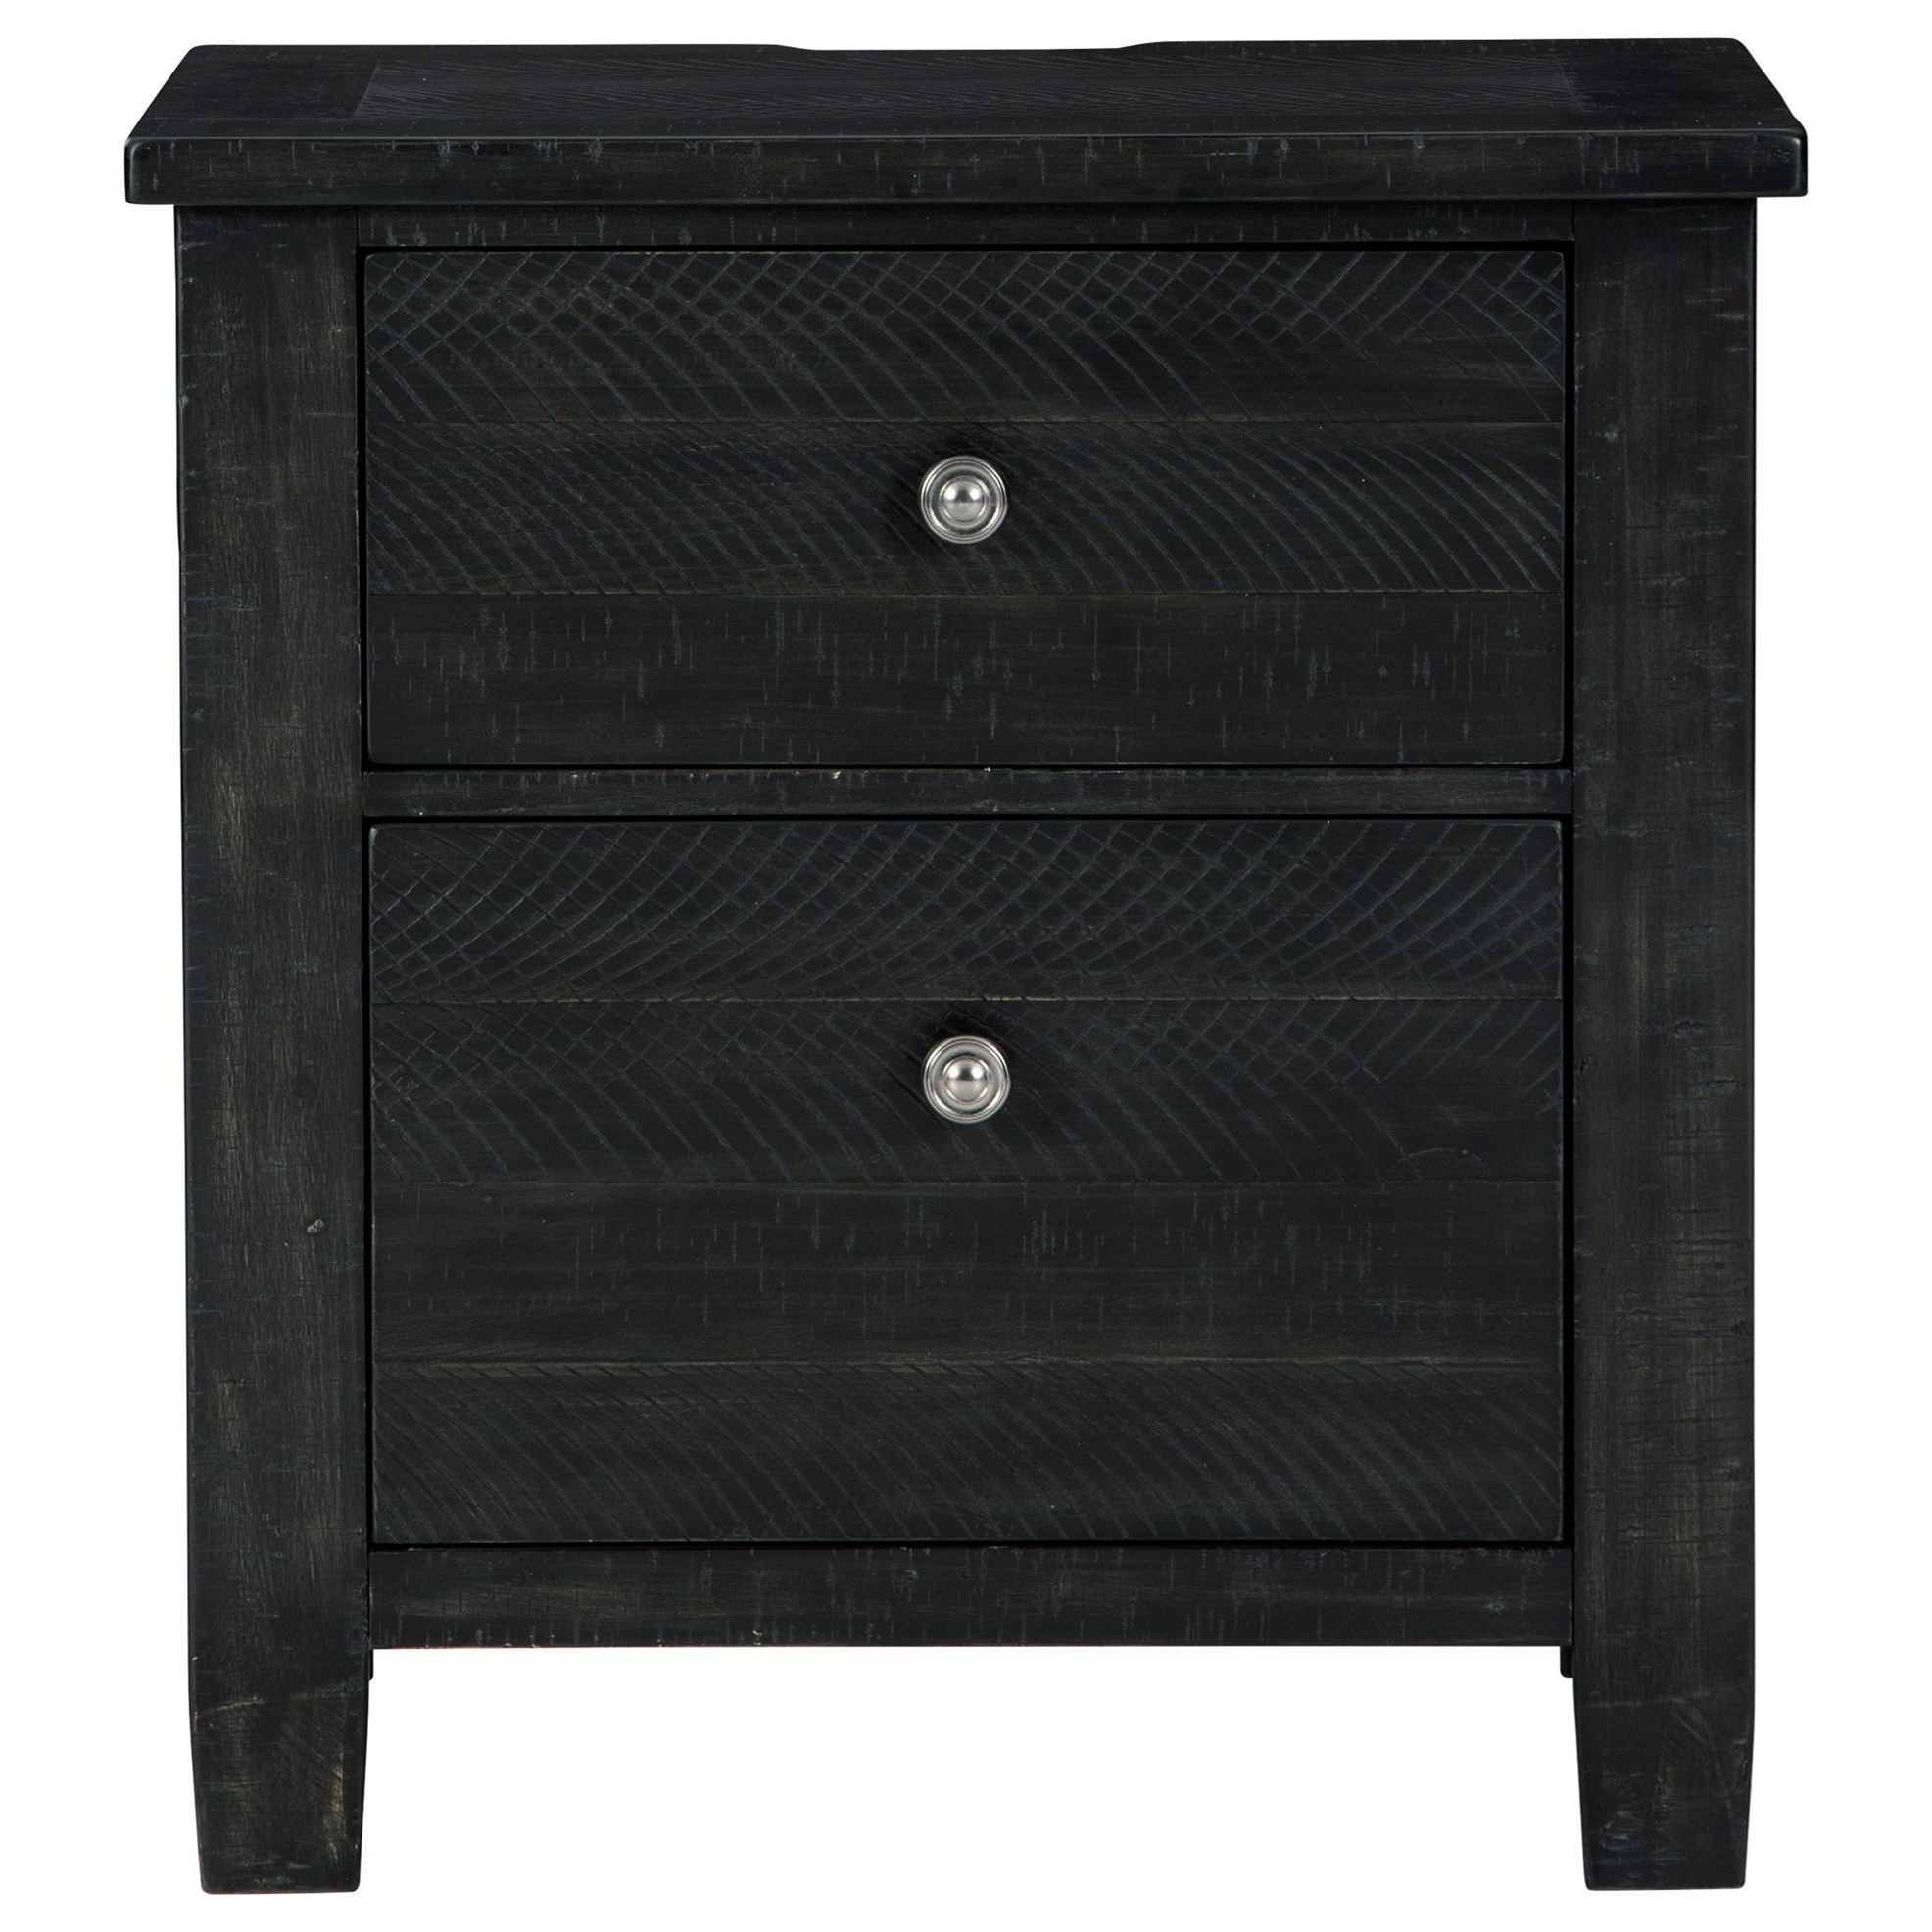 Noorbrook Rustic 2 Drawer Nightstand In Black Finish With Outlets And Usb Charging Becker Furniture Nightstands